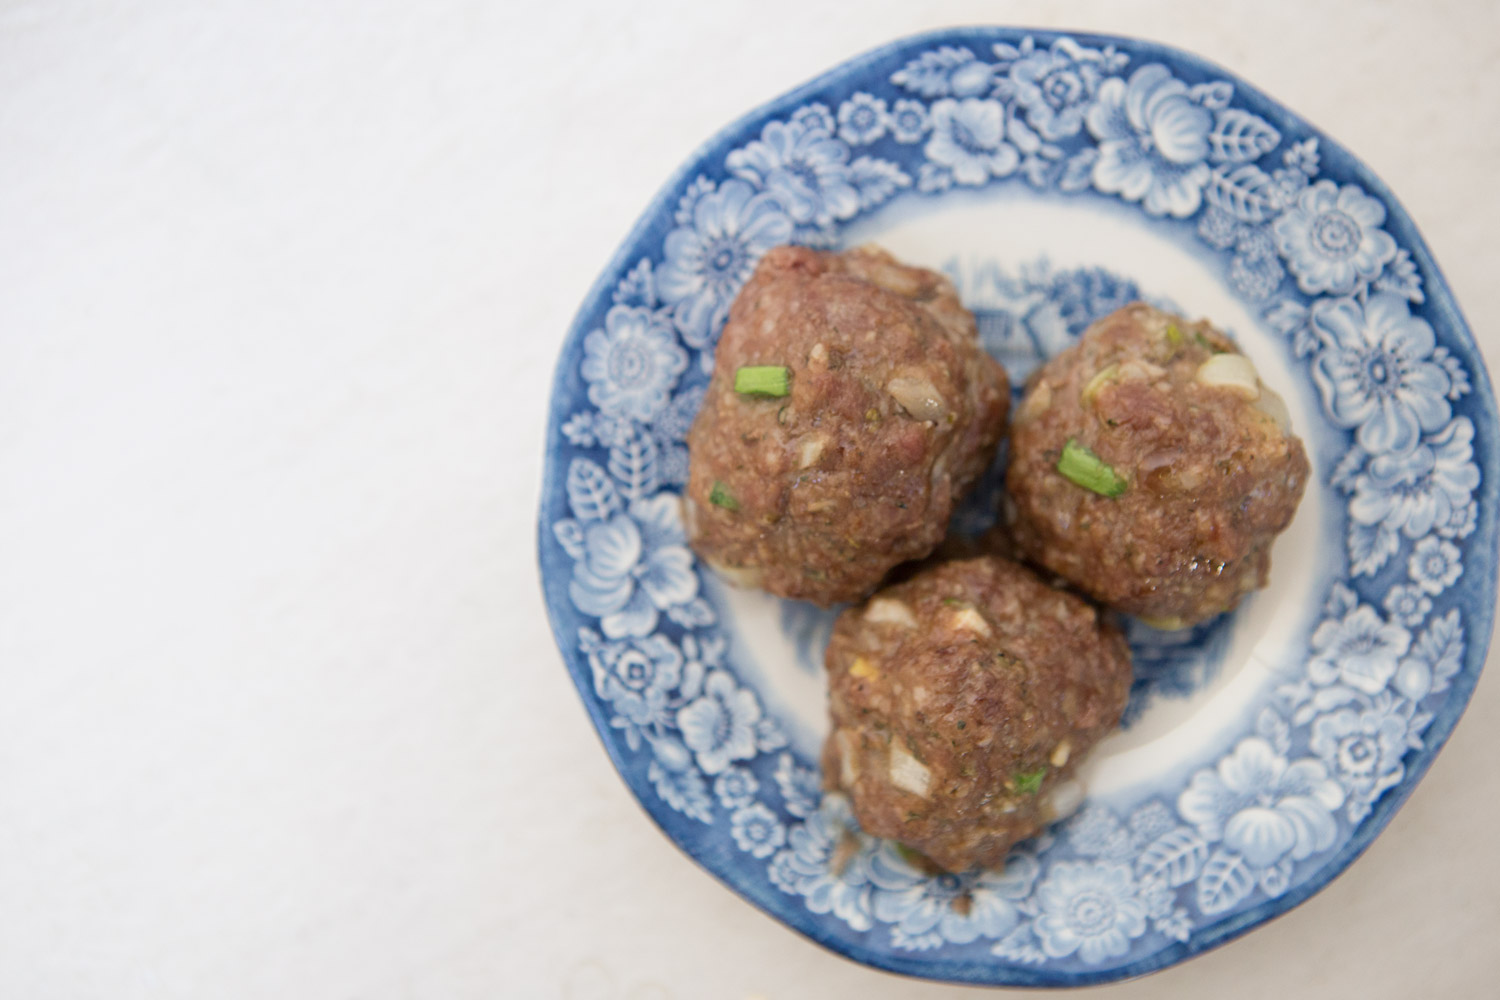 Pin now and make these no-breadcrumb meatballs